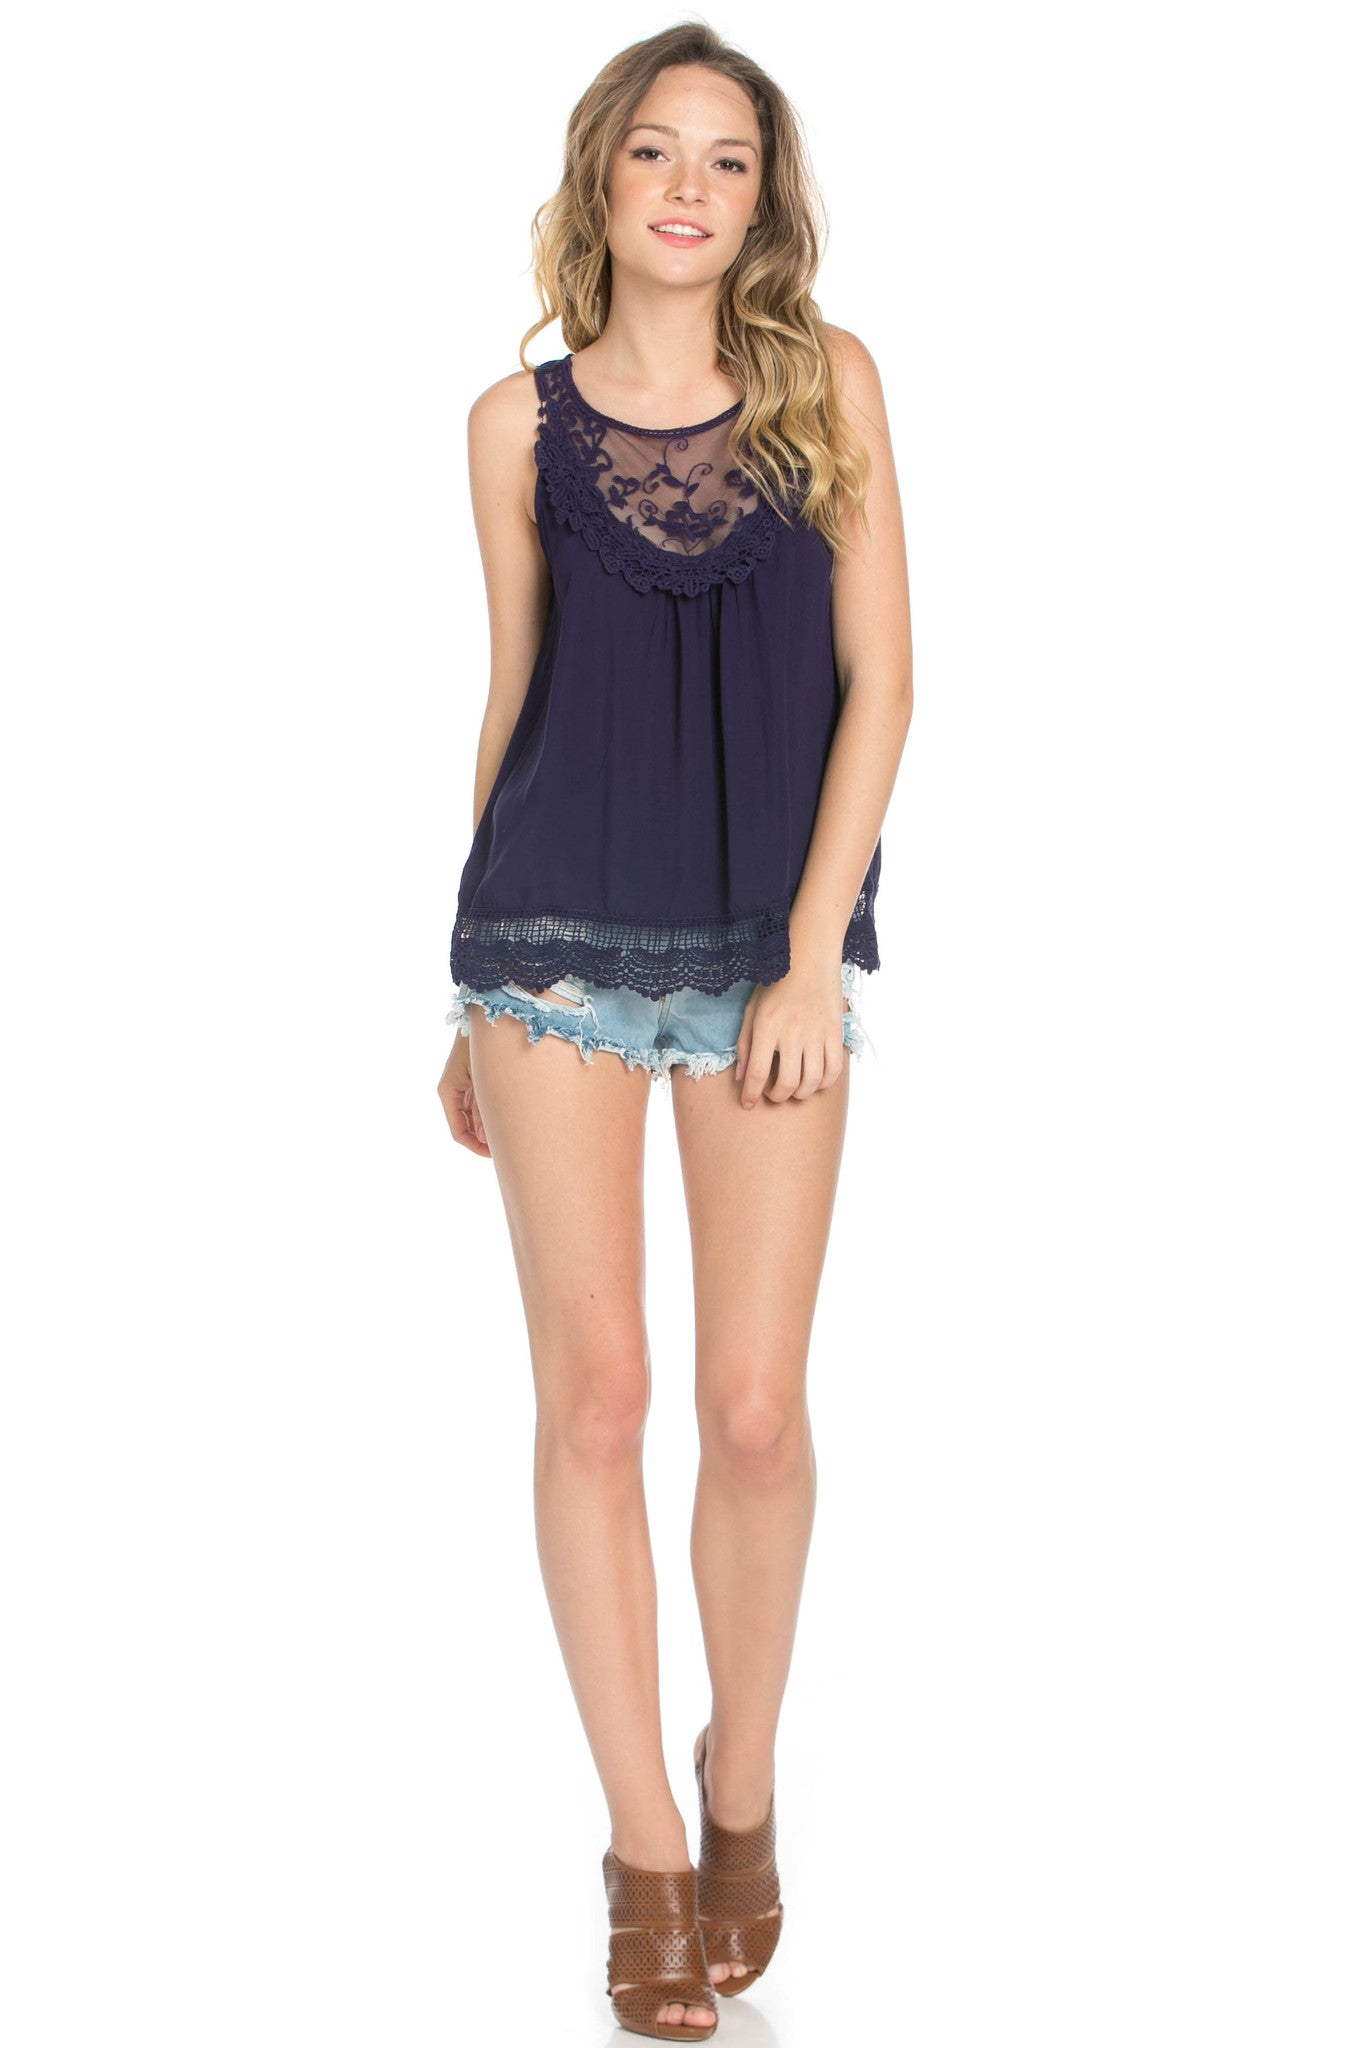 Crochets and Lace Navy Top - Tops - My Yuccie - 6